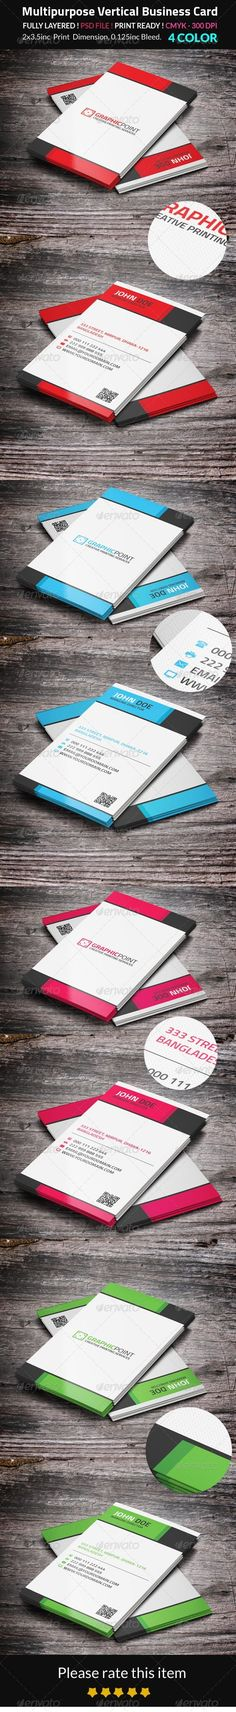 Buy Multipurpose Vertical Business Card by mehedi_hasan on GraphicRiver. PSD files included (Front and Back). inc Print dimension. Vertical Business Cards, Cool Business Cards, Business Card Design, Corporate Business, Print Templates, Card Templates, Print Design, Graphic Design, Name Cards